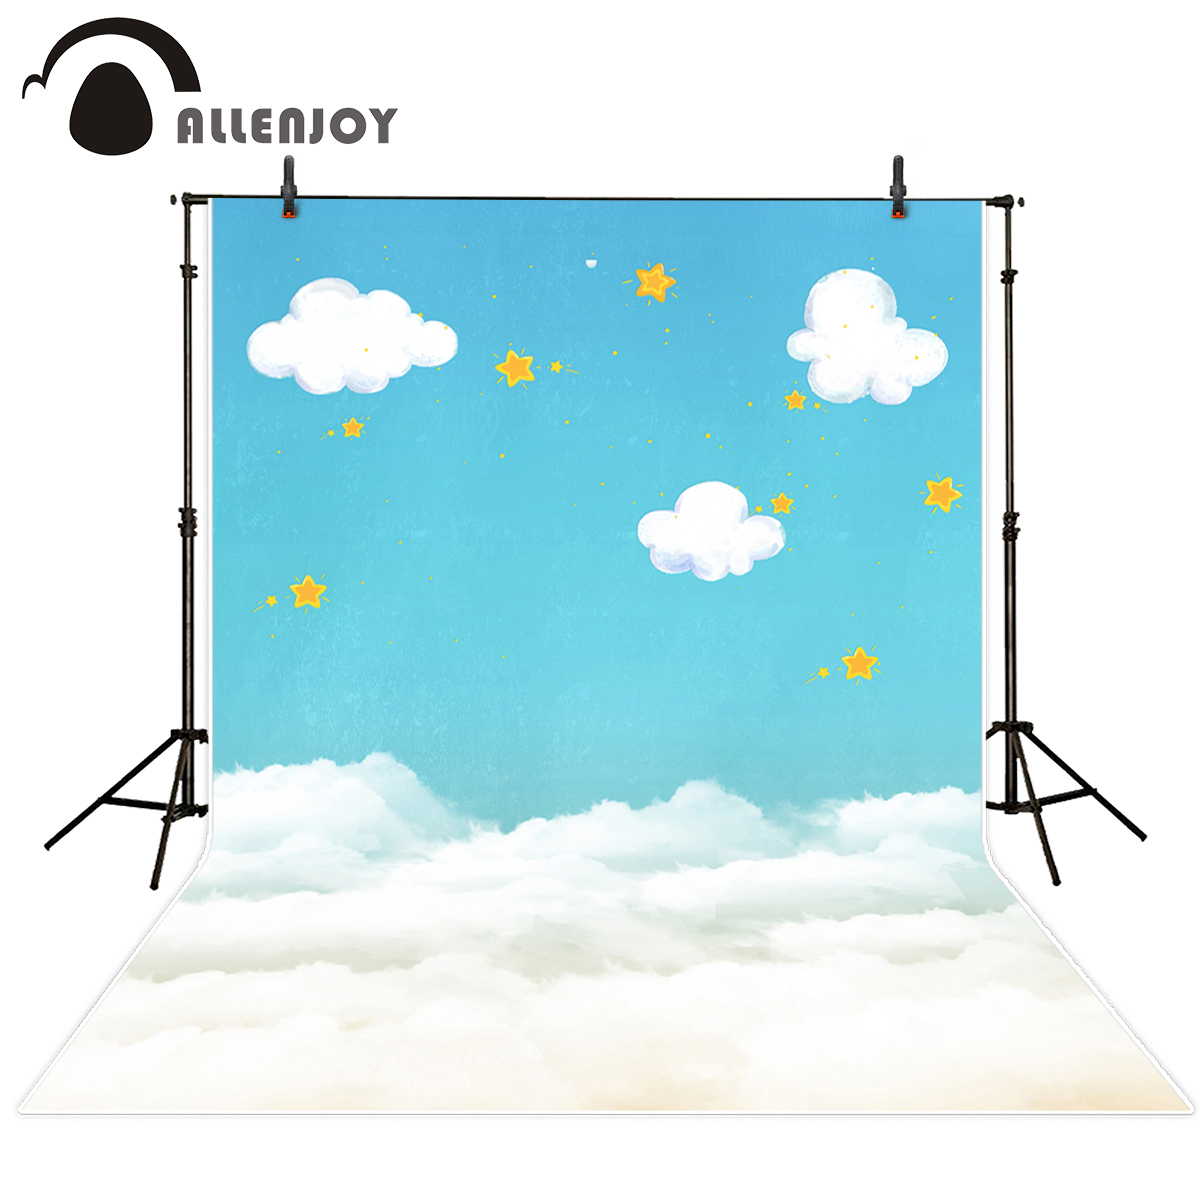 Allenjoy photography background blue sky white cloud stars new born baby birthday theme backdrop professional photo studio